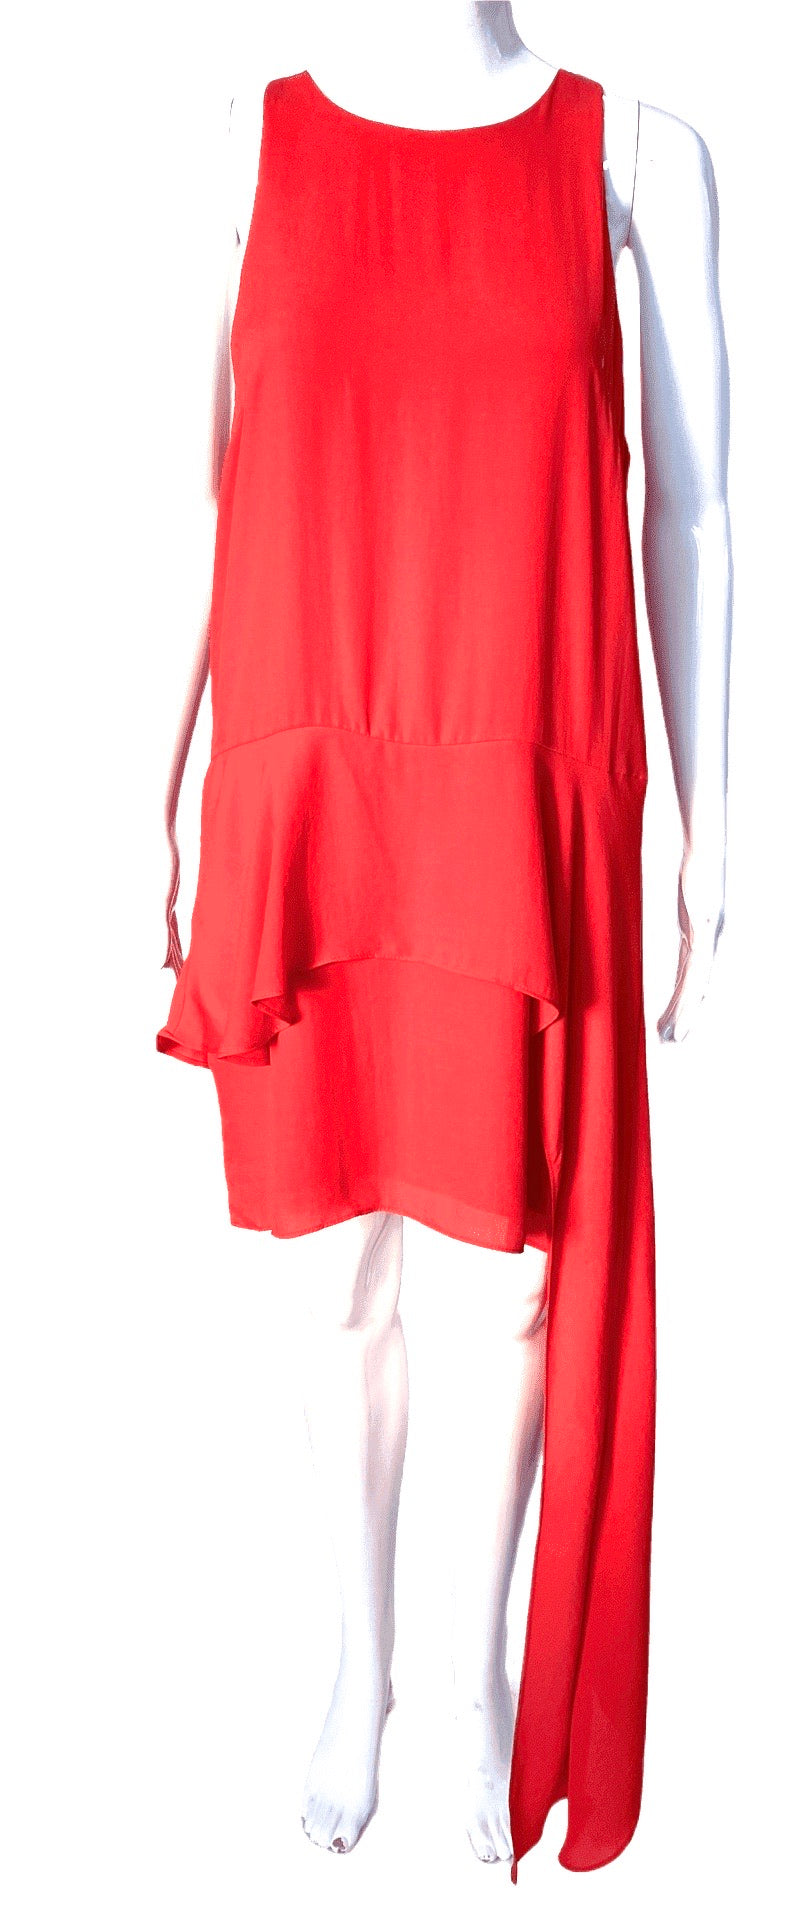 Strut & Bolt Tangerine Mini Dress with Train | Tunic Top | M